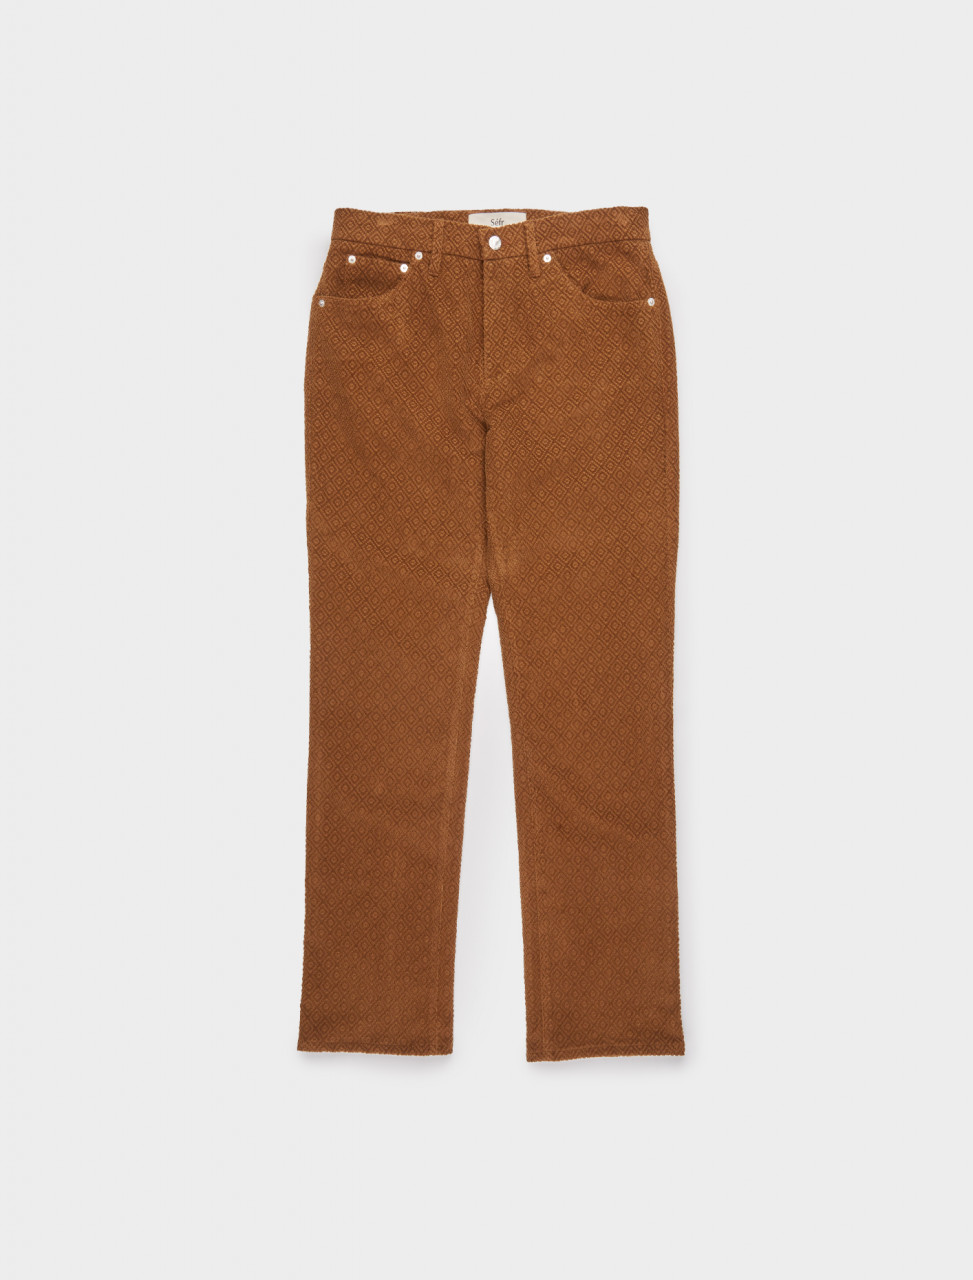 ST-OB SÉFR SIN TROUSERS OAK BROWN